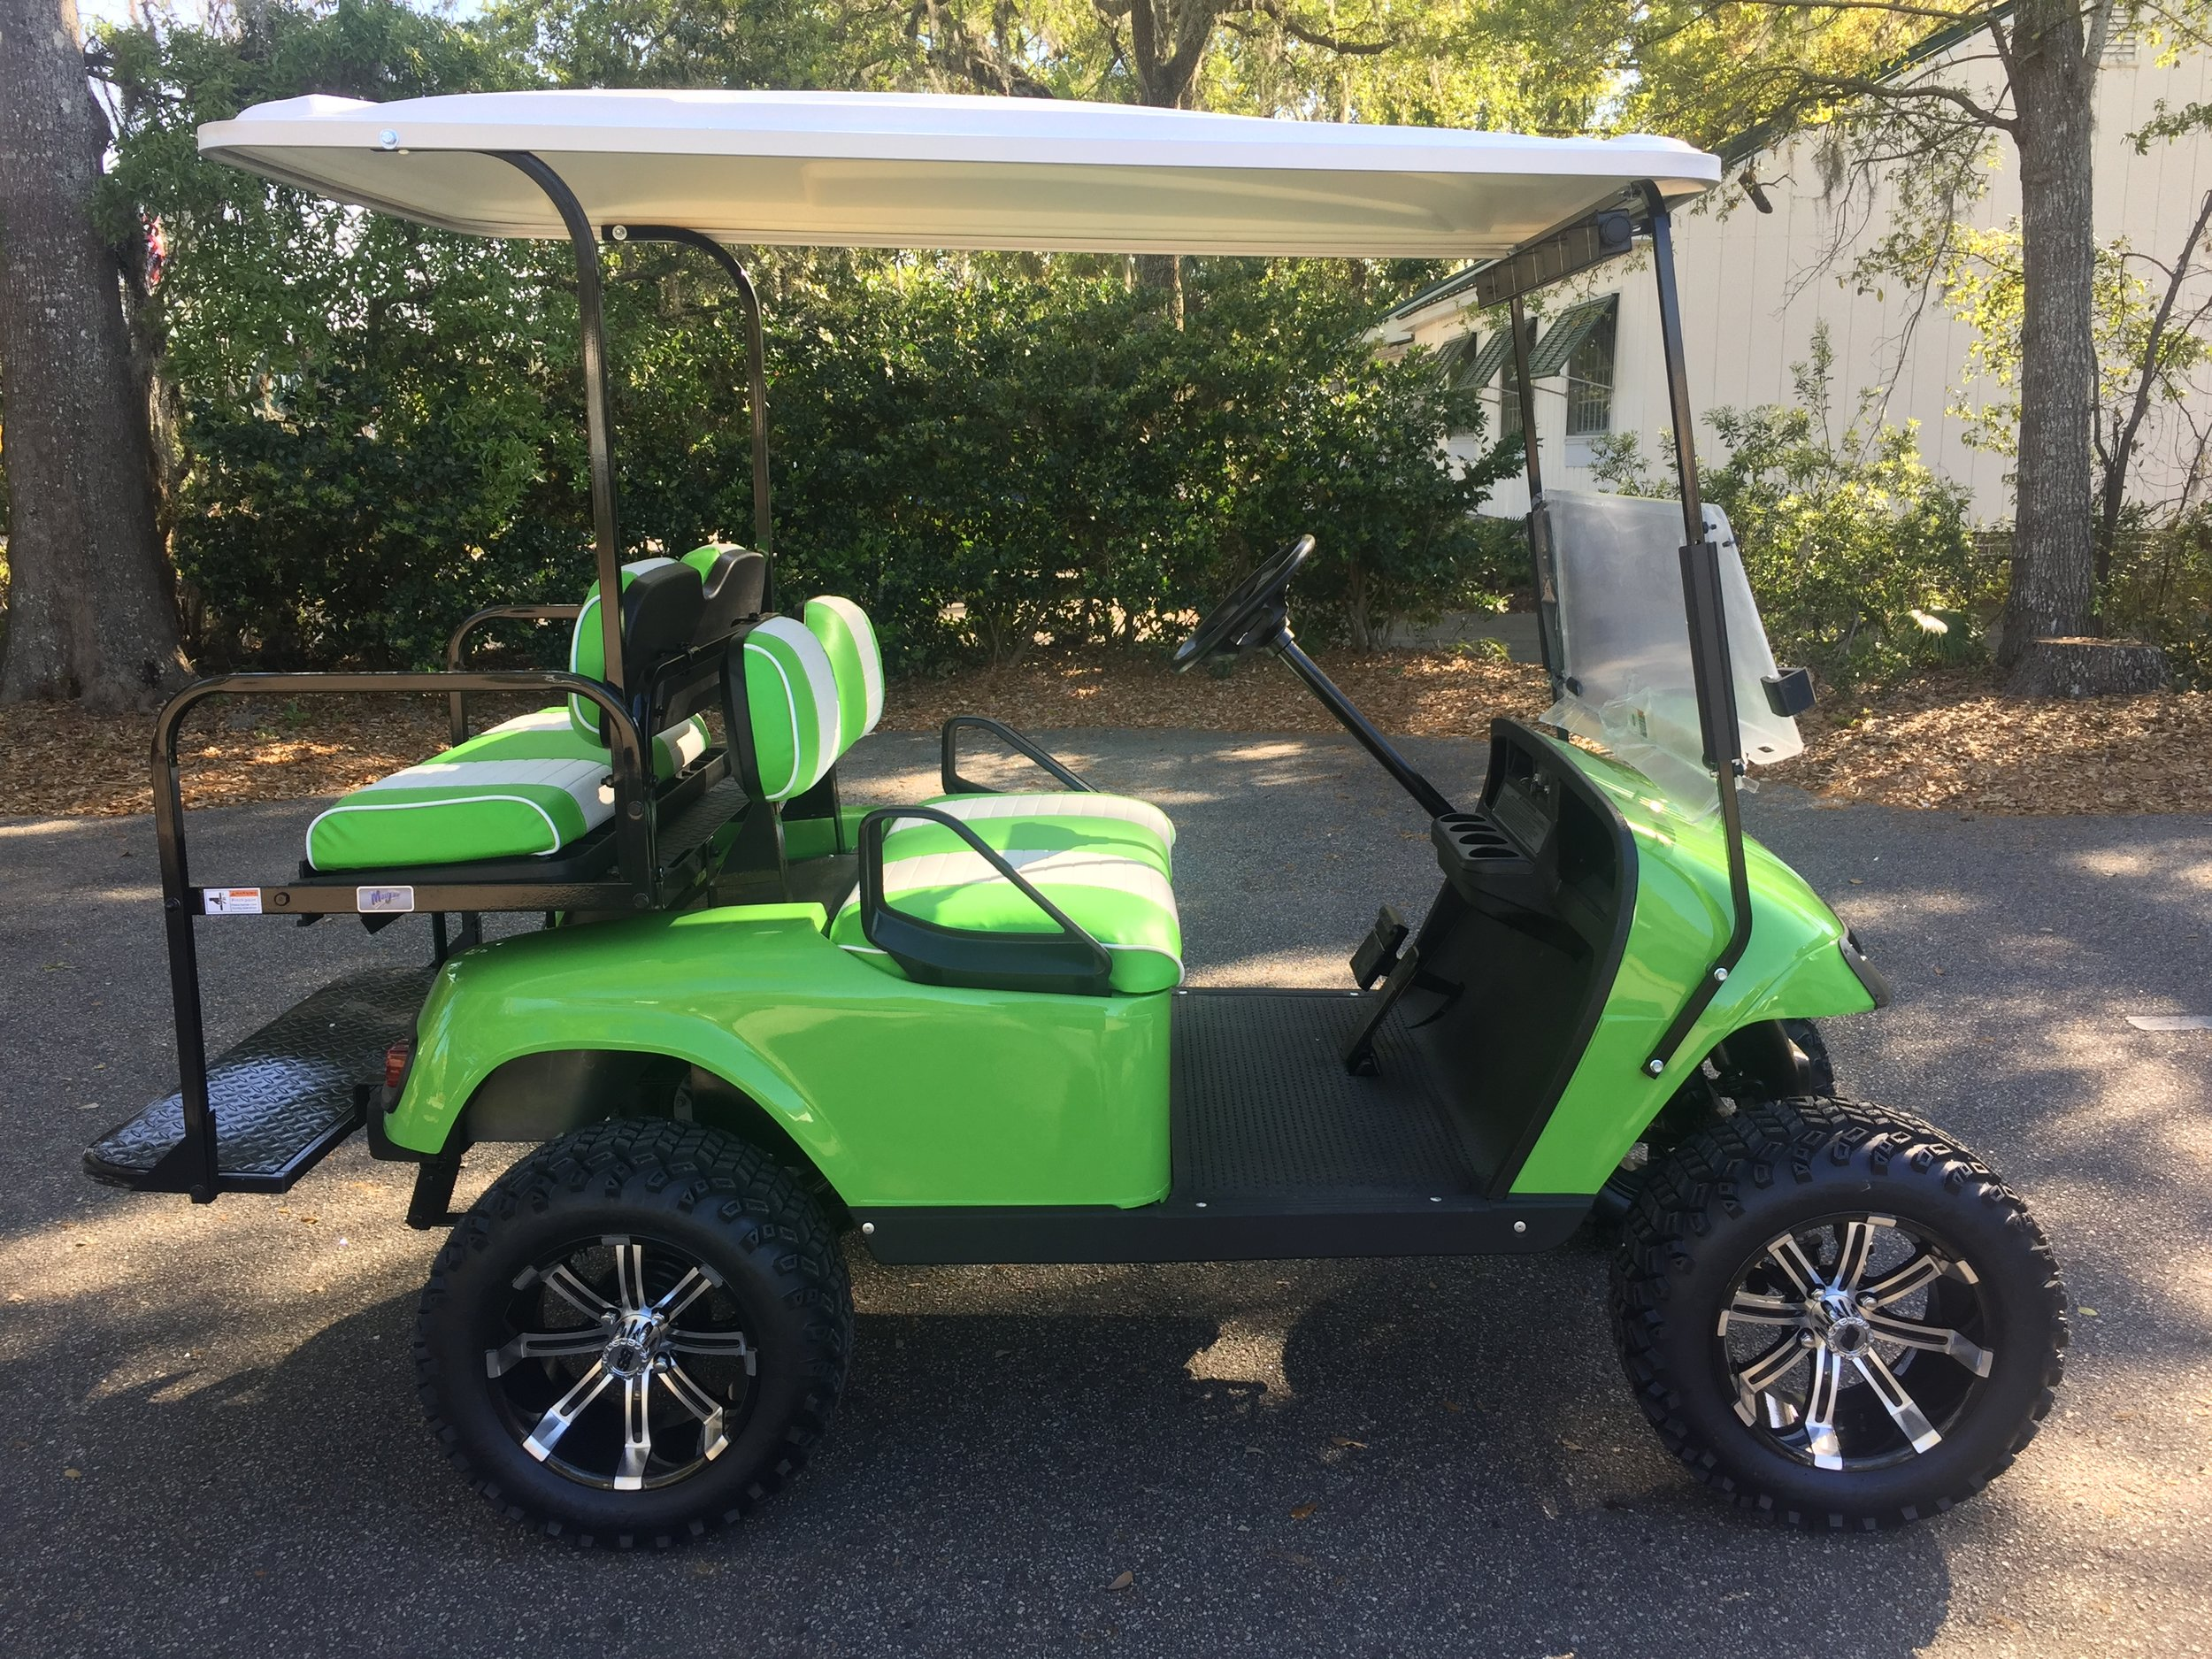 Lime Green EZGO Lifted Cart  Lime green/white seats, white extended top, new batteries, high speed code, LED lights, Backlash (23x10x14) tires, mirror, flip windshield, and state of charge meter